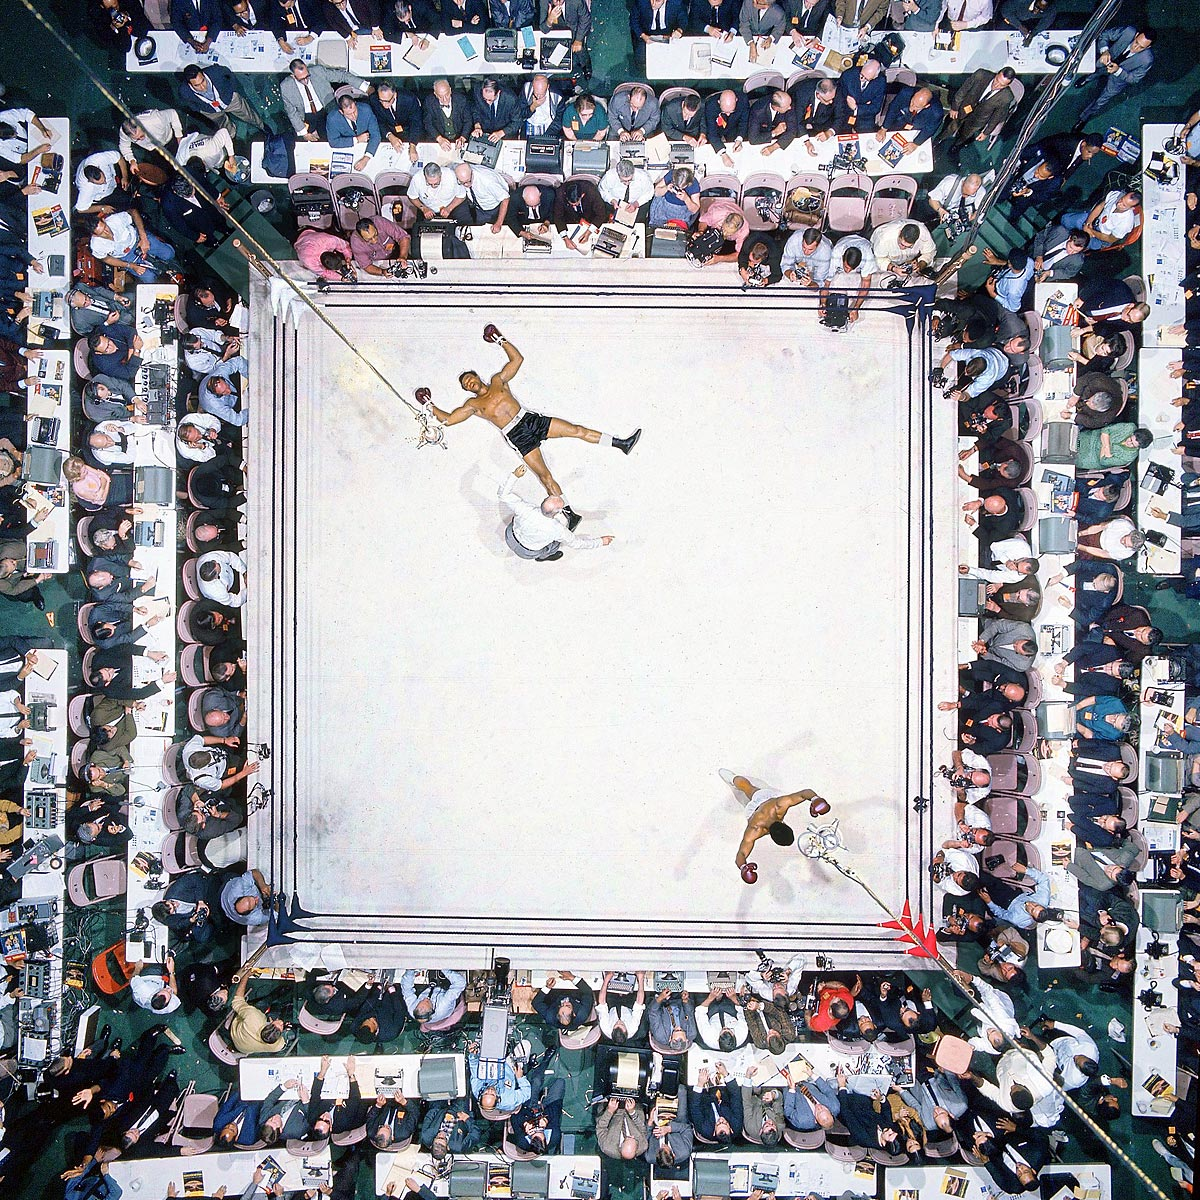 greatest sports photos of all time com nov 14 1966 ali knocks out cleveland big cat williams in